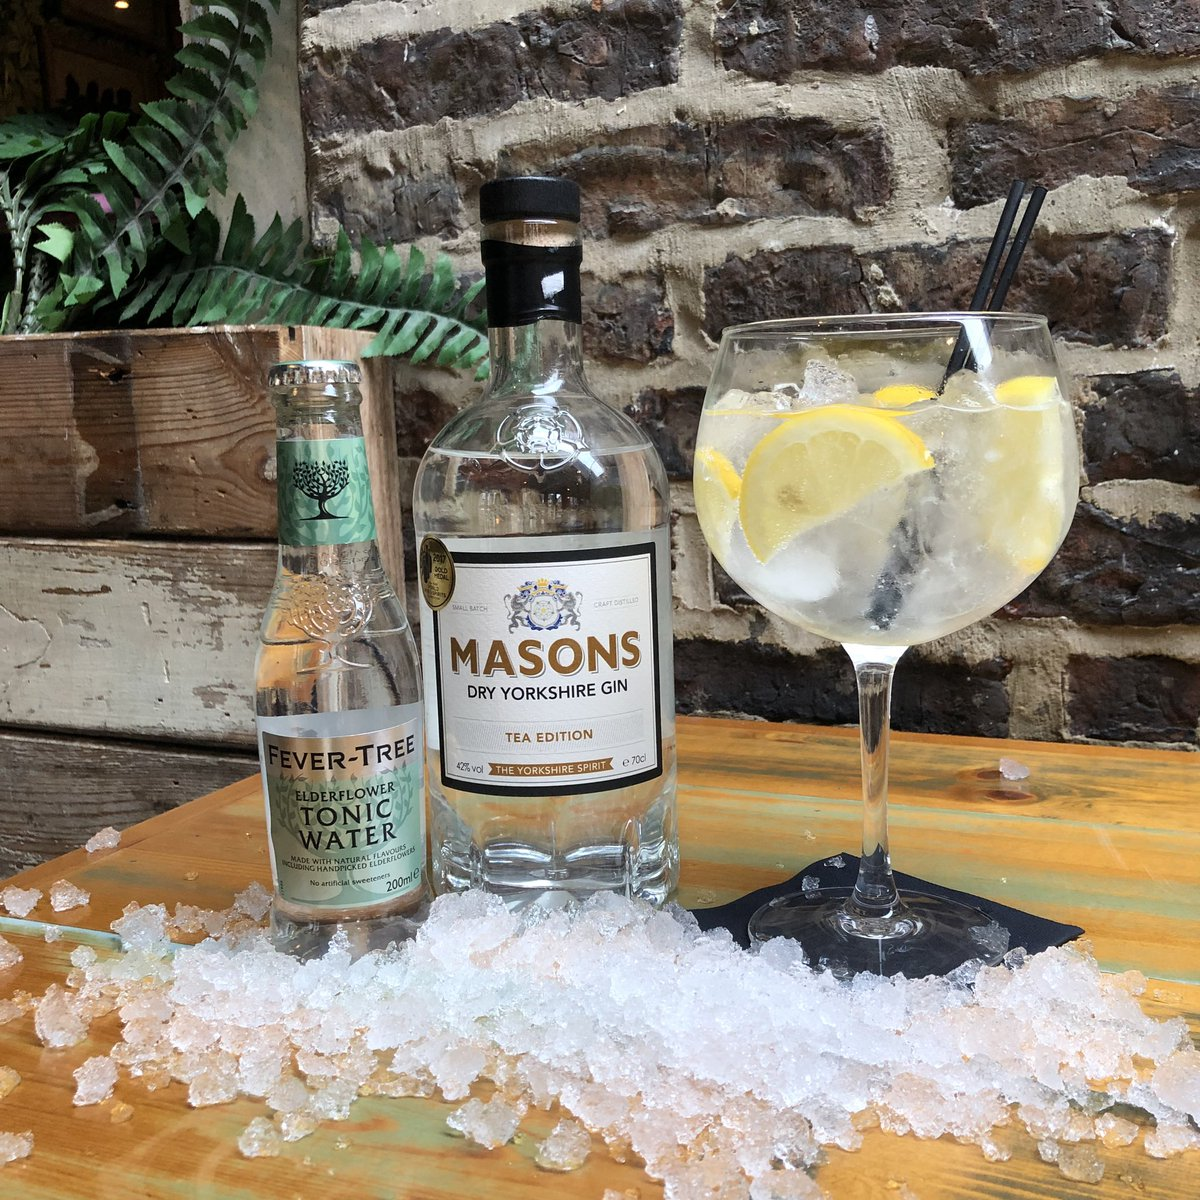 Our gin of the week this week is brand new to the potting shed! Masons Dry Yorkshire gin, Tea edition!☕️ Served with fevertree elderflower tonic and sliced lemon🍋 #masonsgin #gin #gotw #fevertree